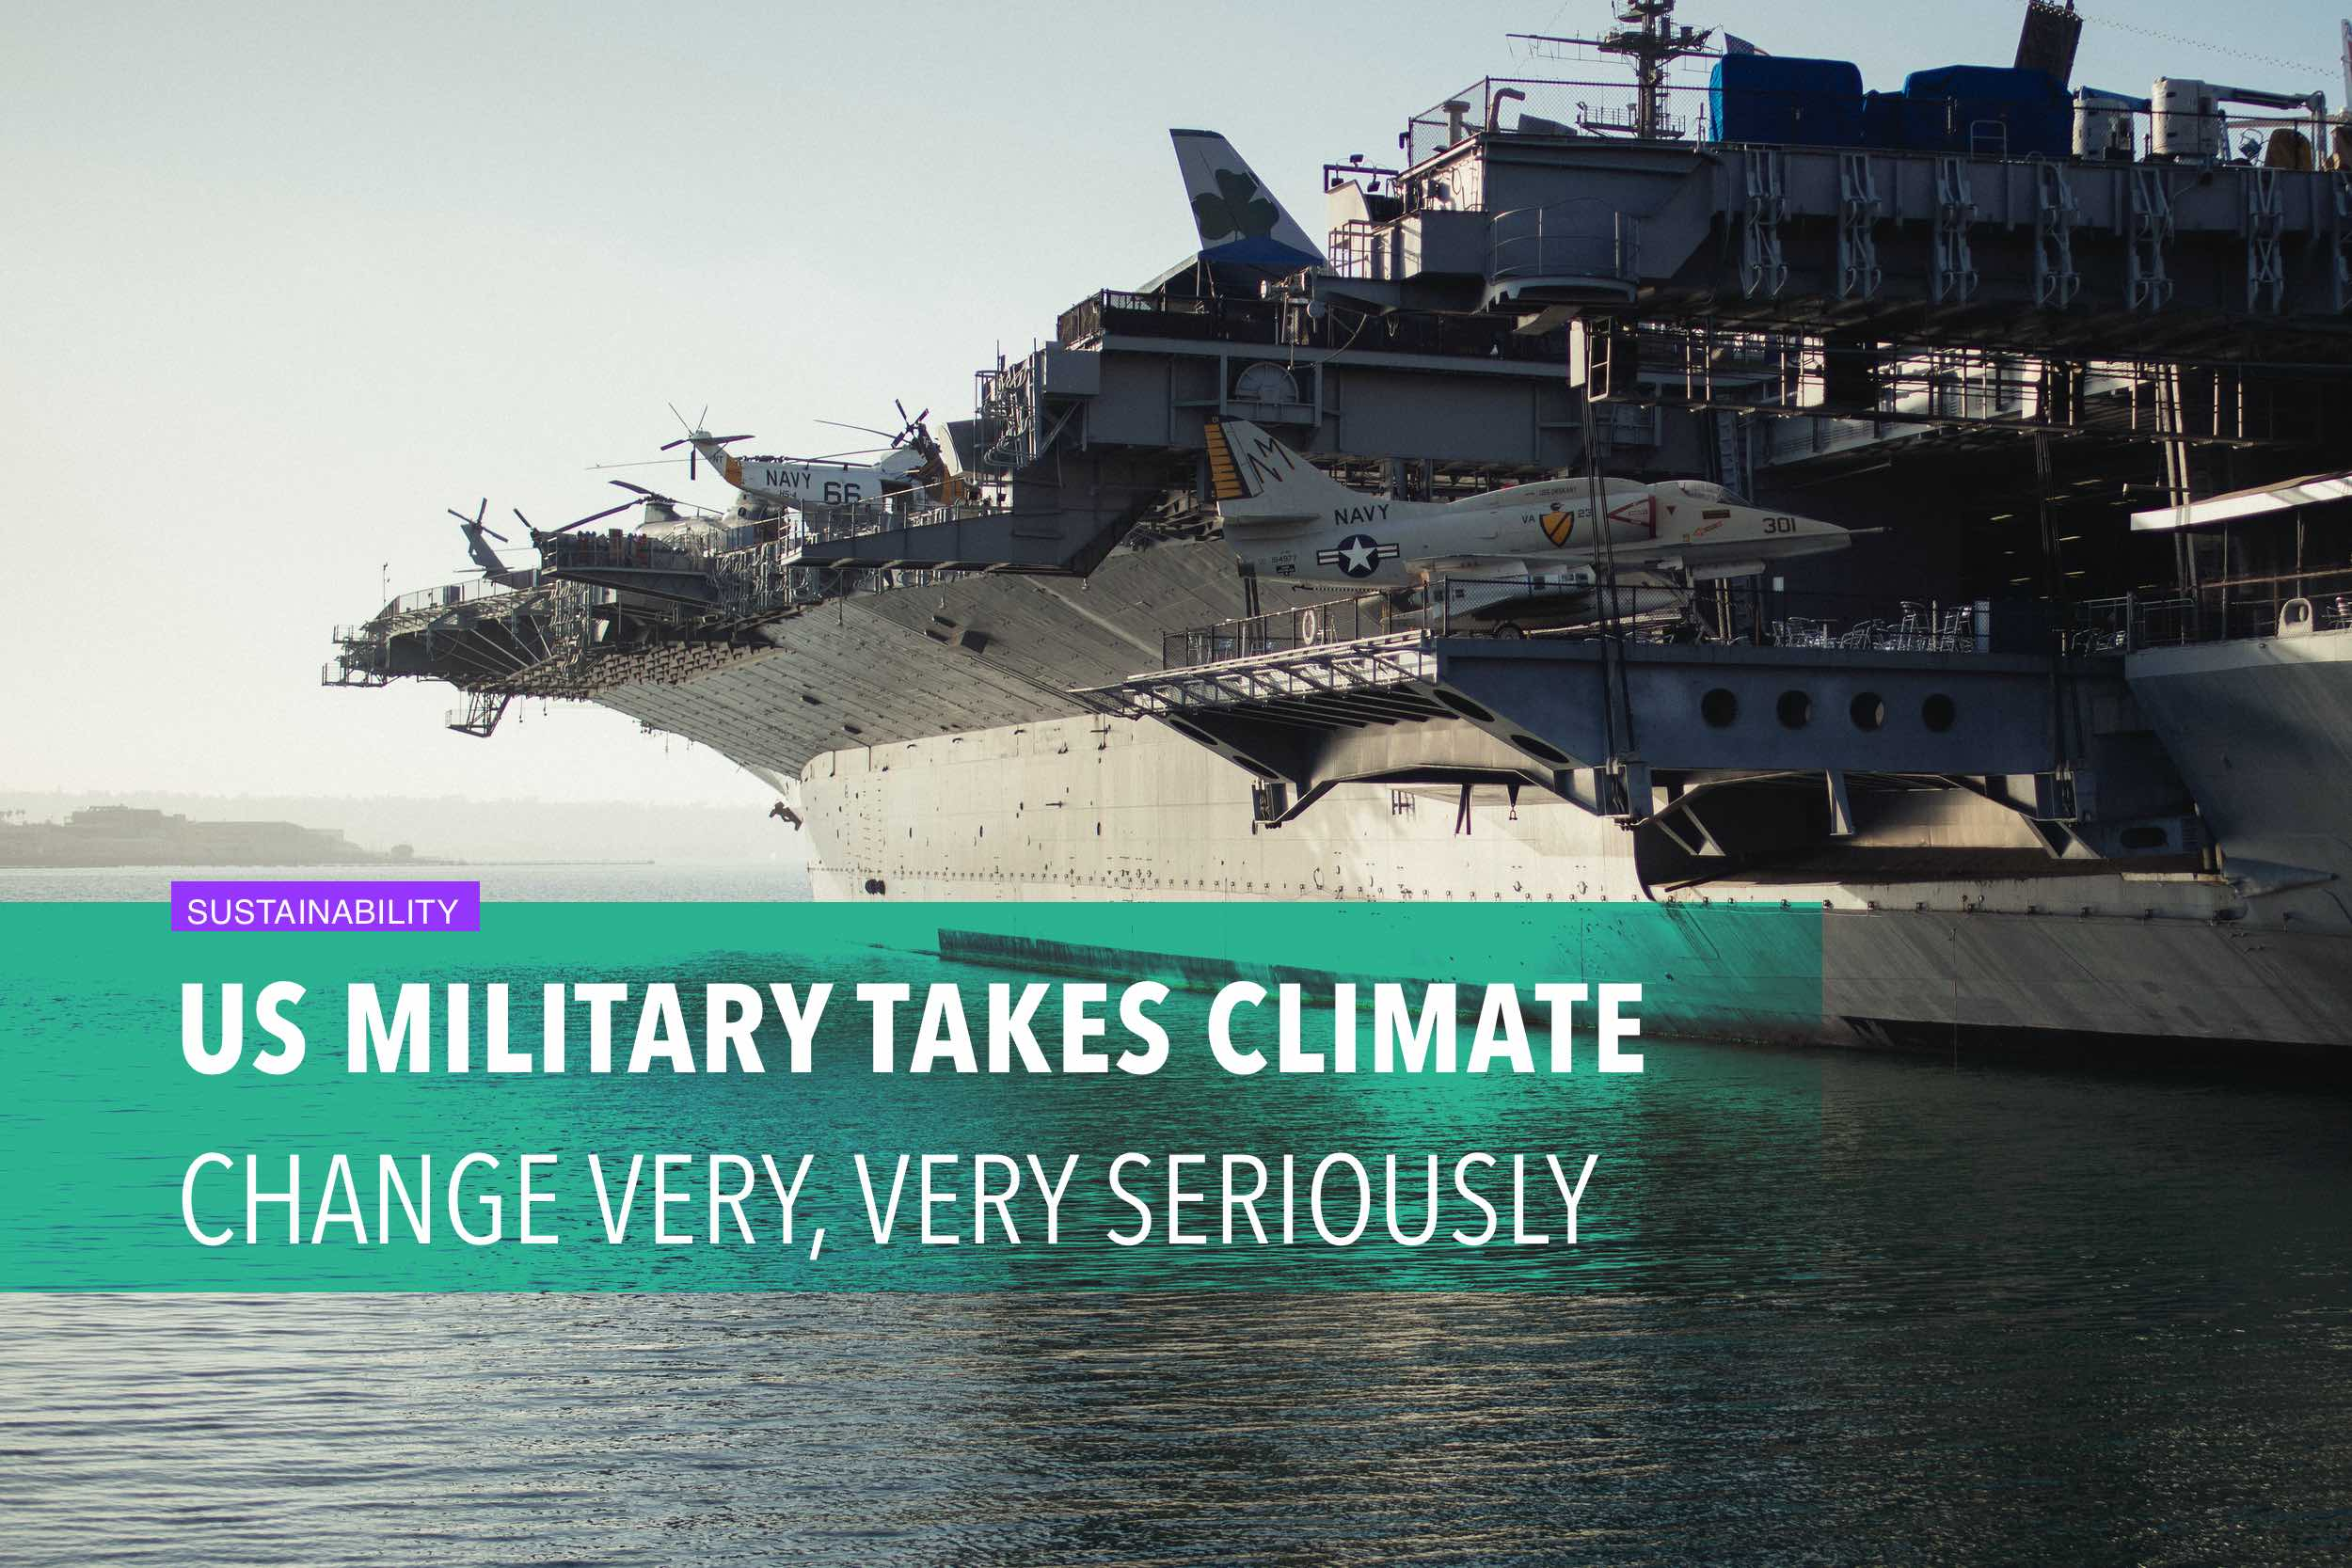 US military takes climate change very, very seriously